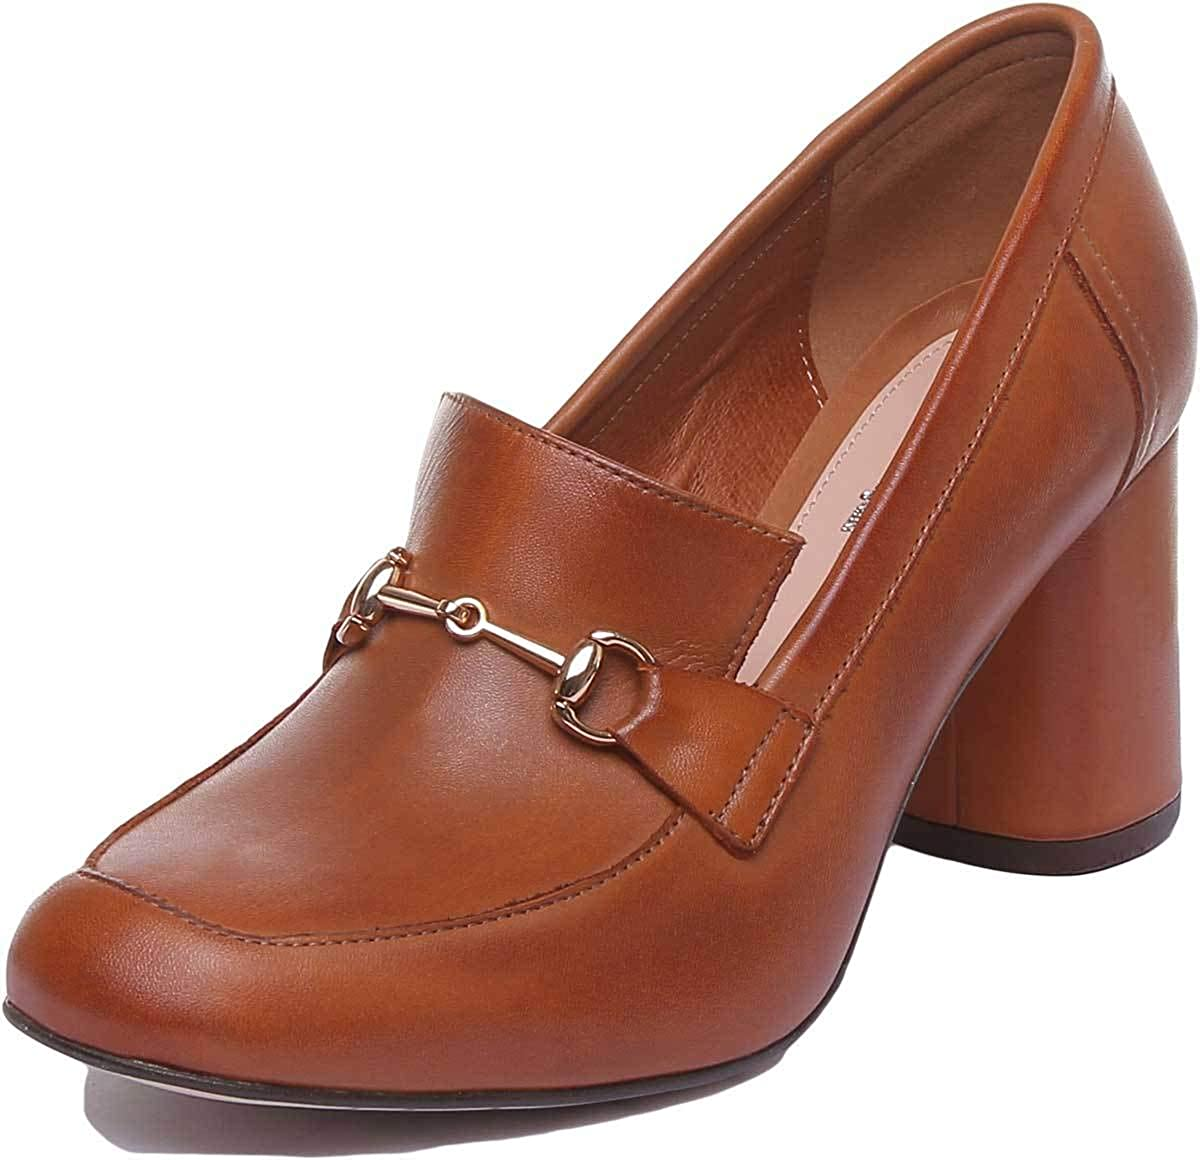 Justin Reece Alice Womens Leather Shoes Beige